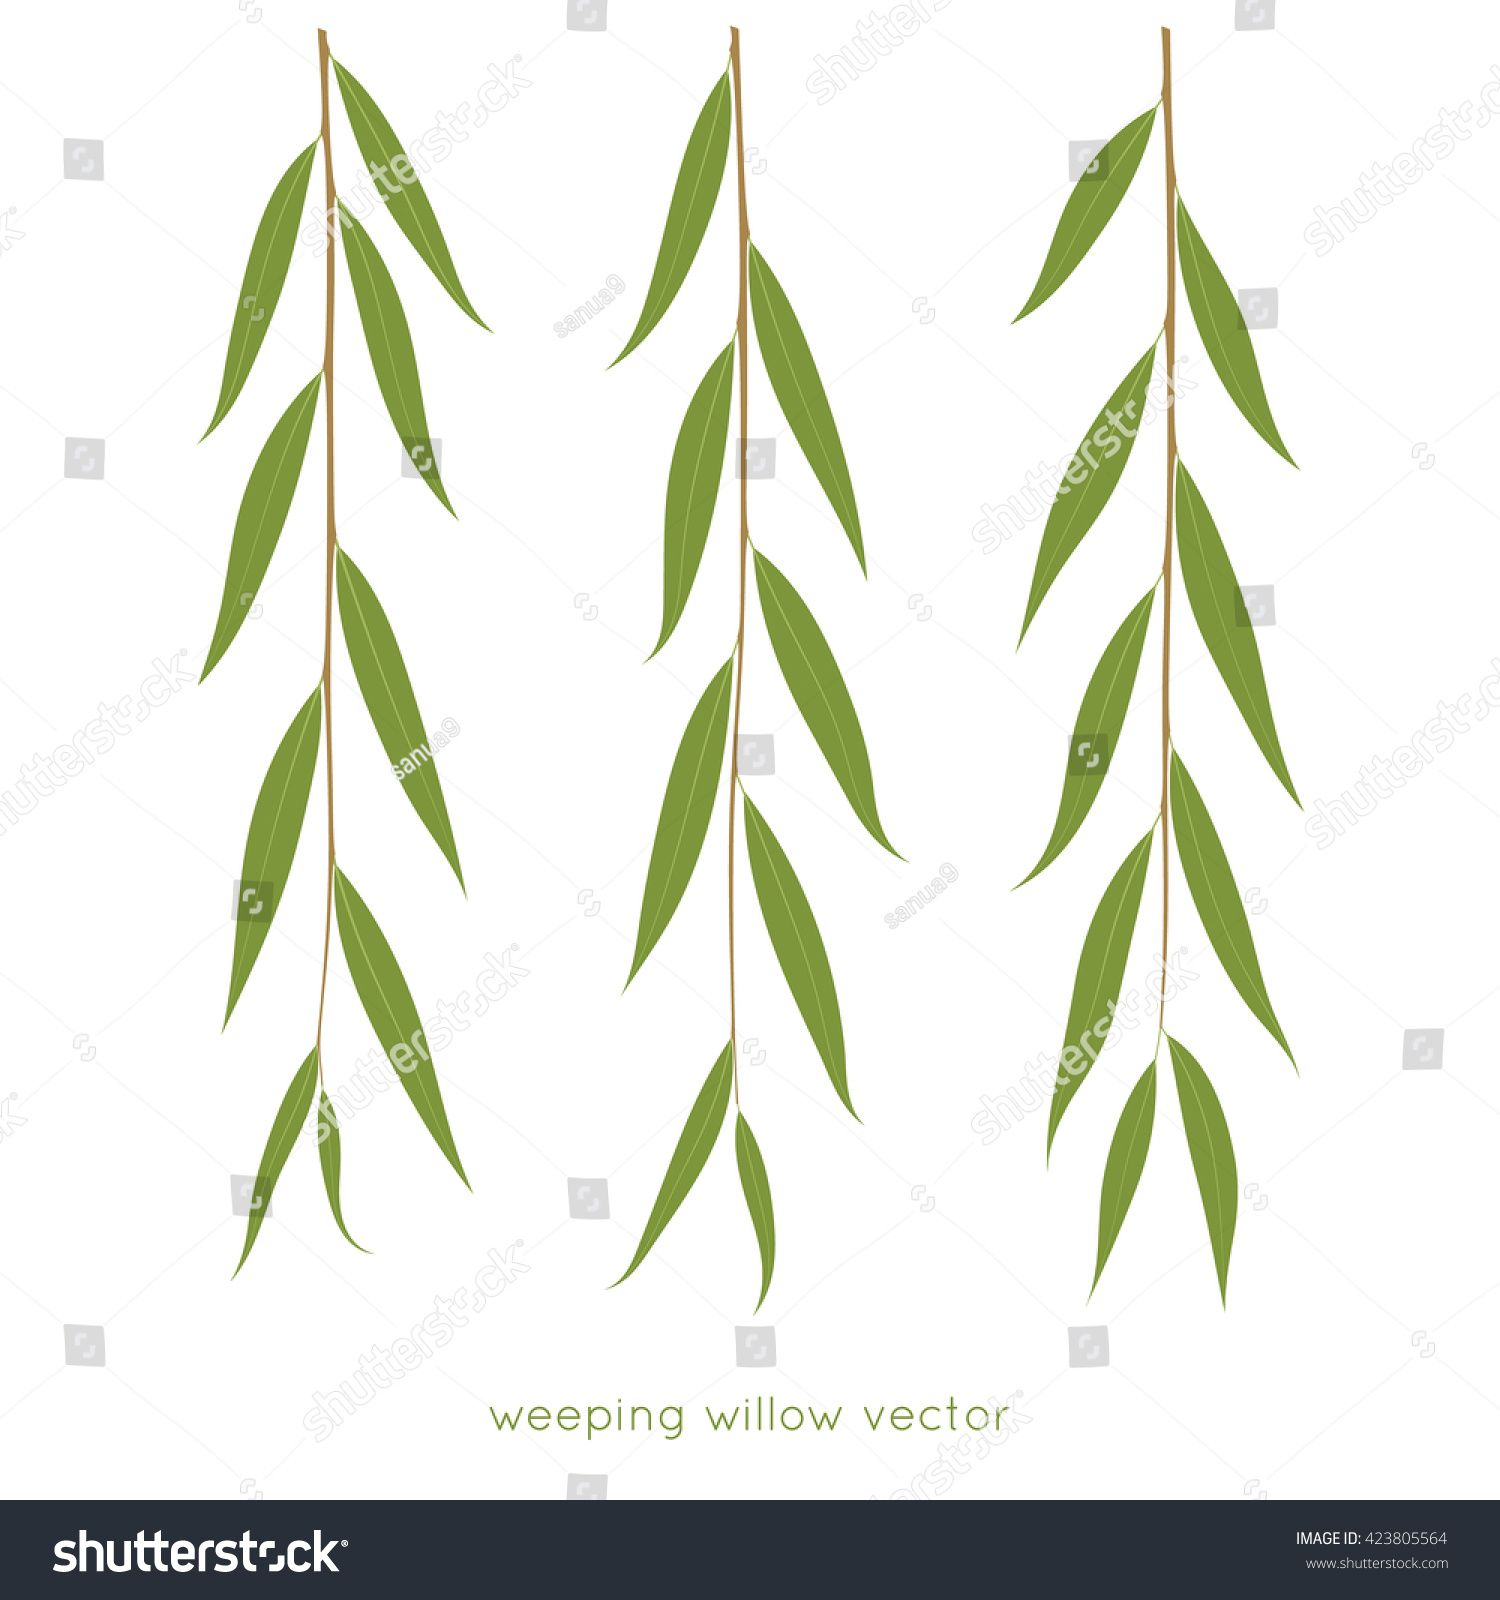 Weeping Willow Twigs Tree Branches Various Leaves Shape Isolated Vector Illustration Weeping Willow Tattoo Weeping Willow Willow Leaf,Best Cheap Champagne For Wedding Toast